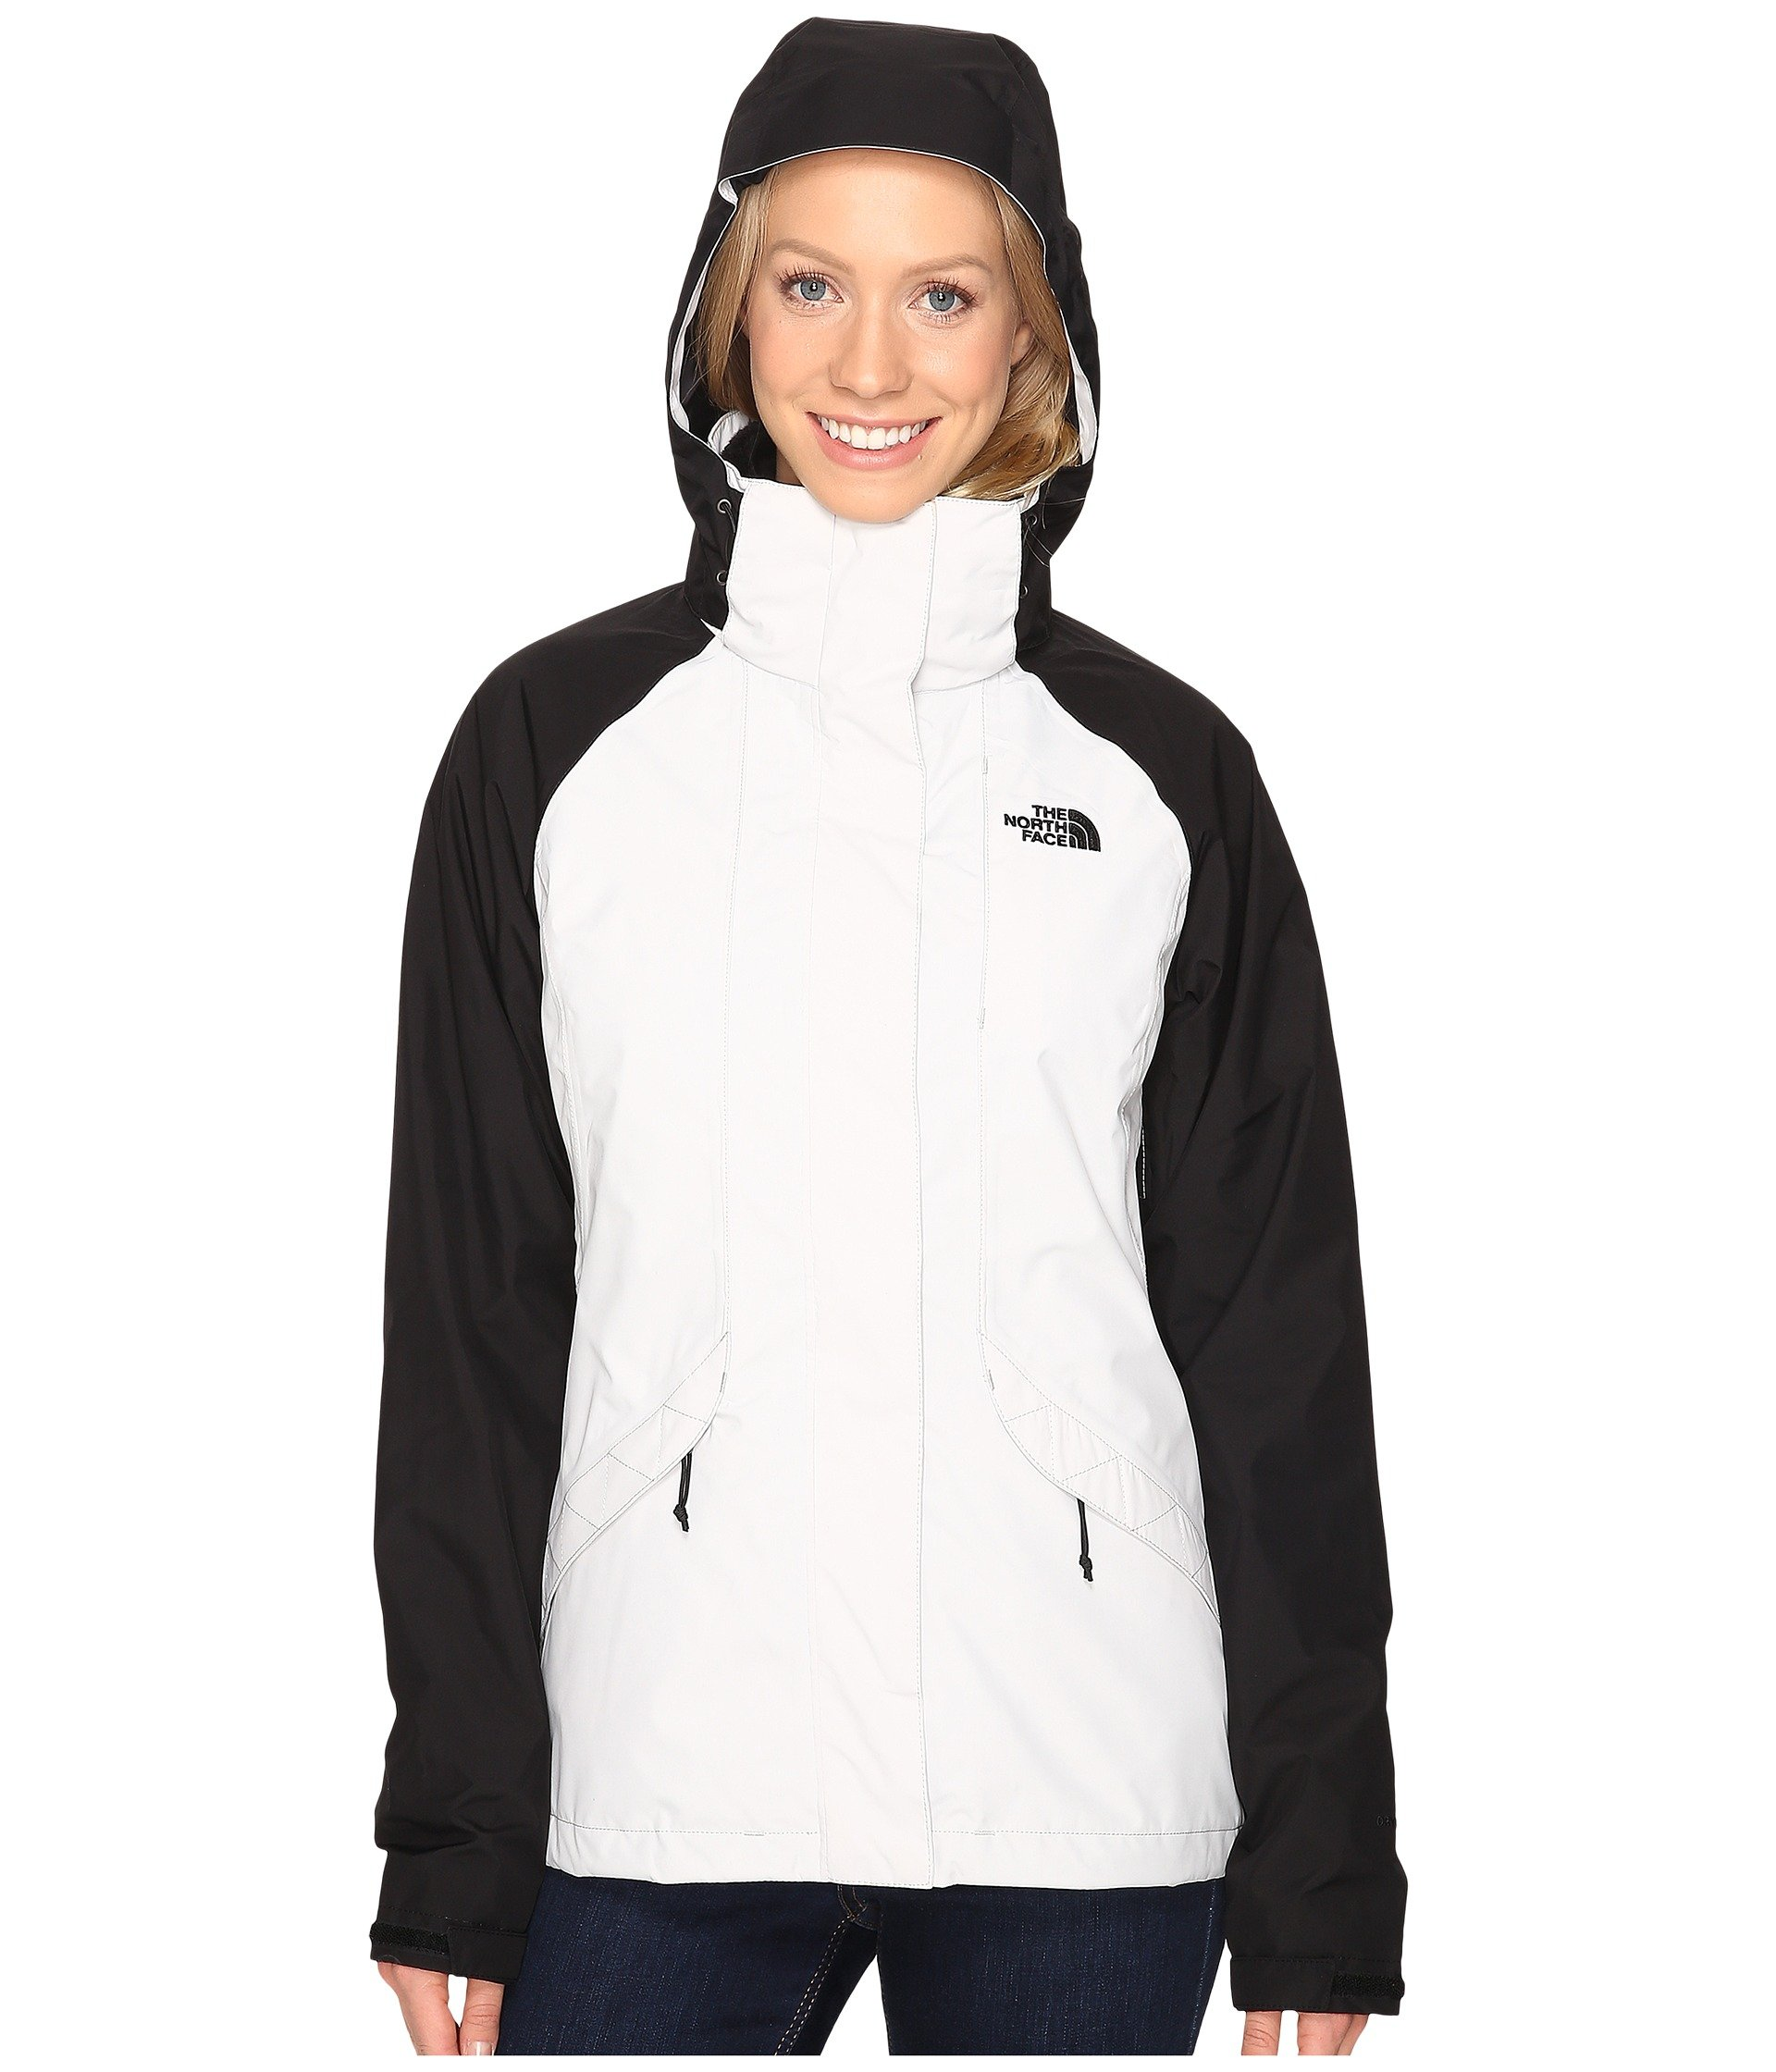 North Face Womens Boundary Triclimate Jacket - Large - Lunar Ice Grey/TNF Black by The North Face (Image #6)